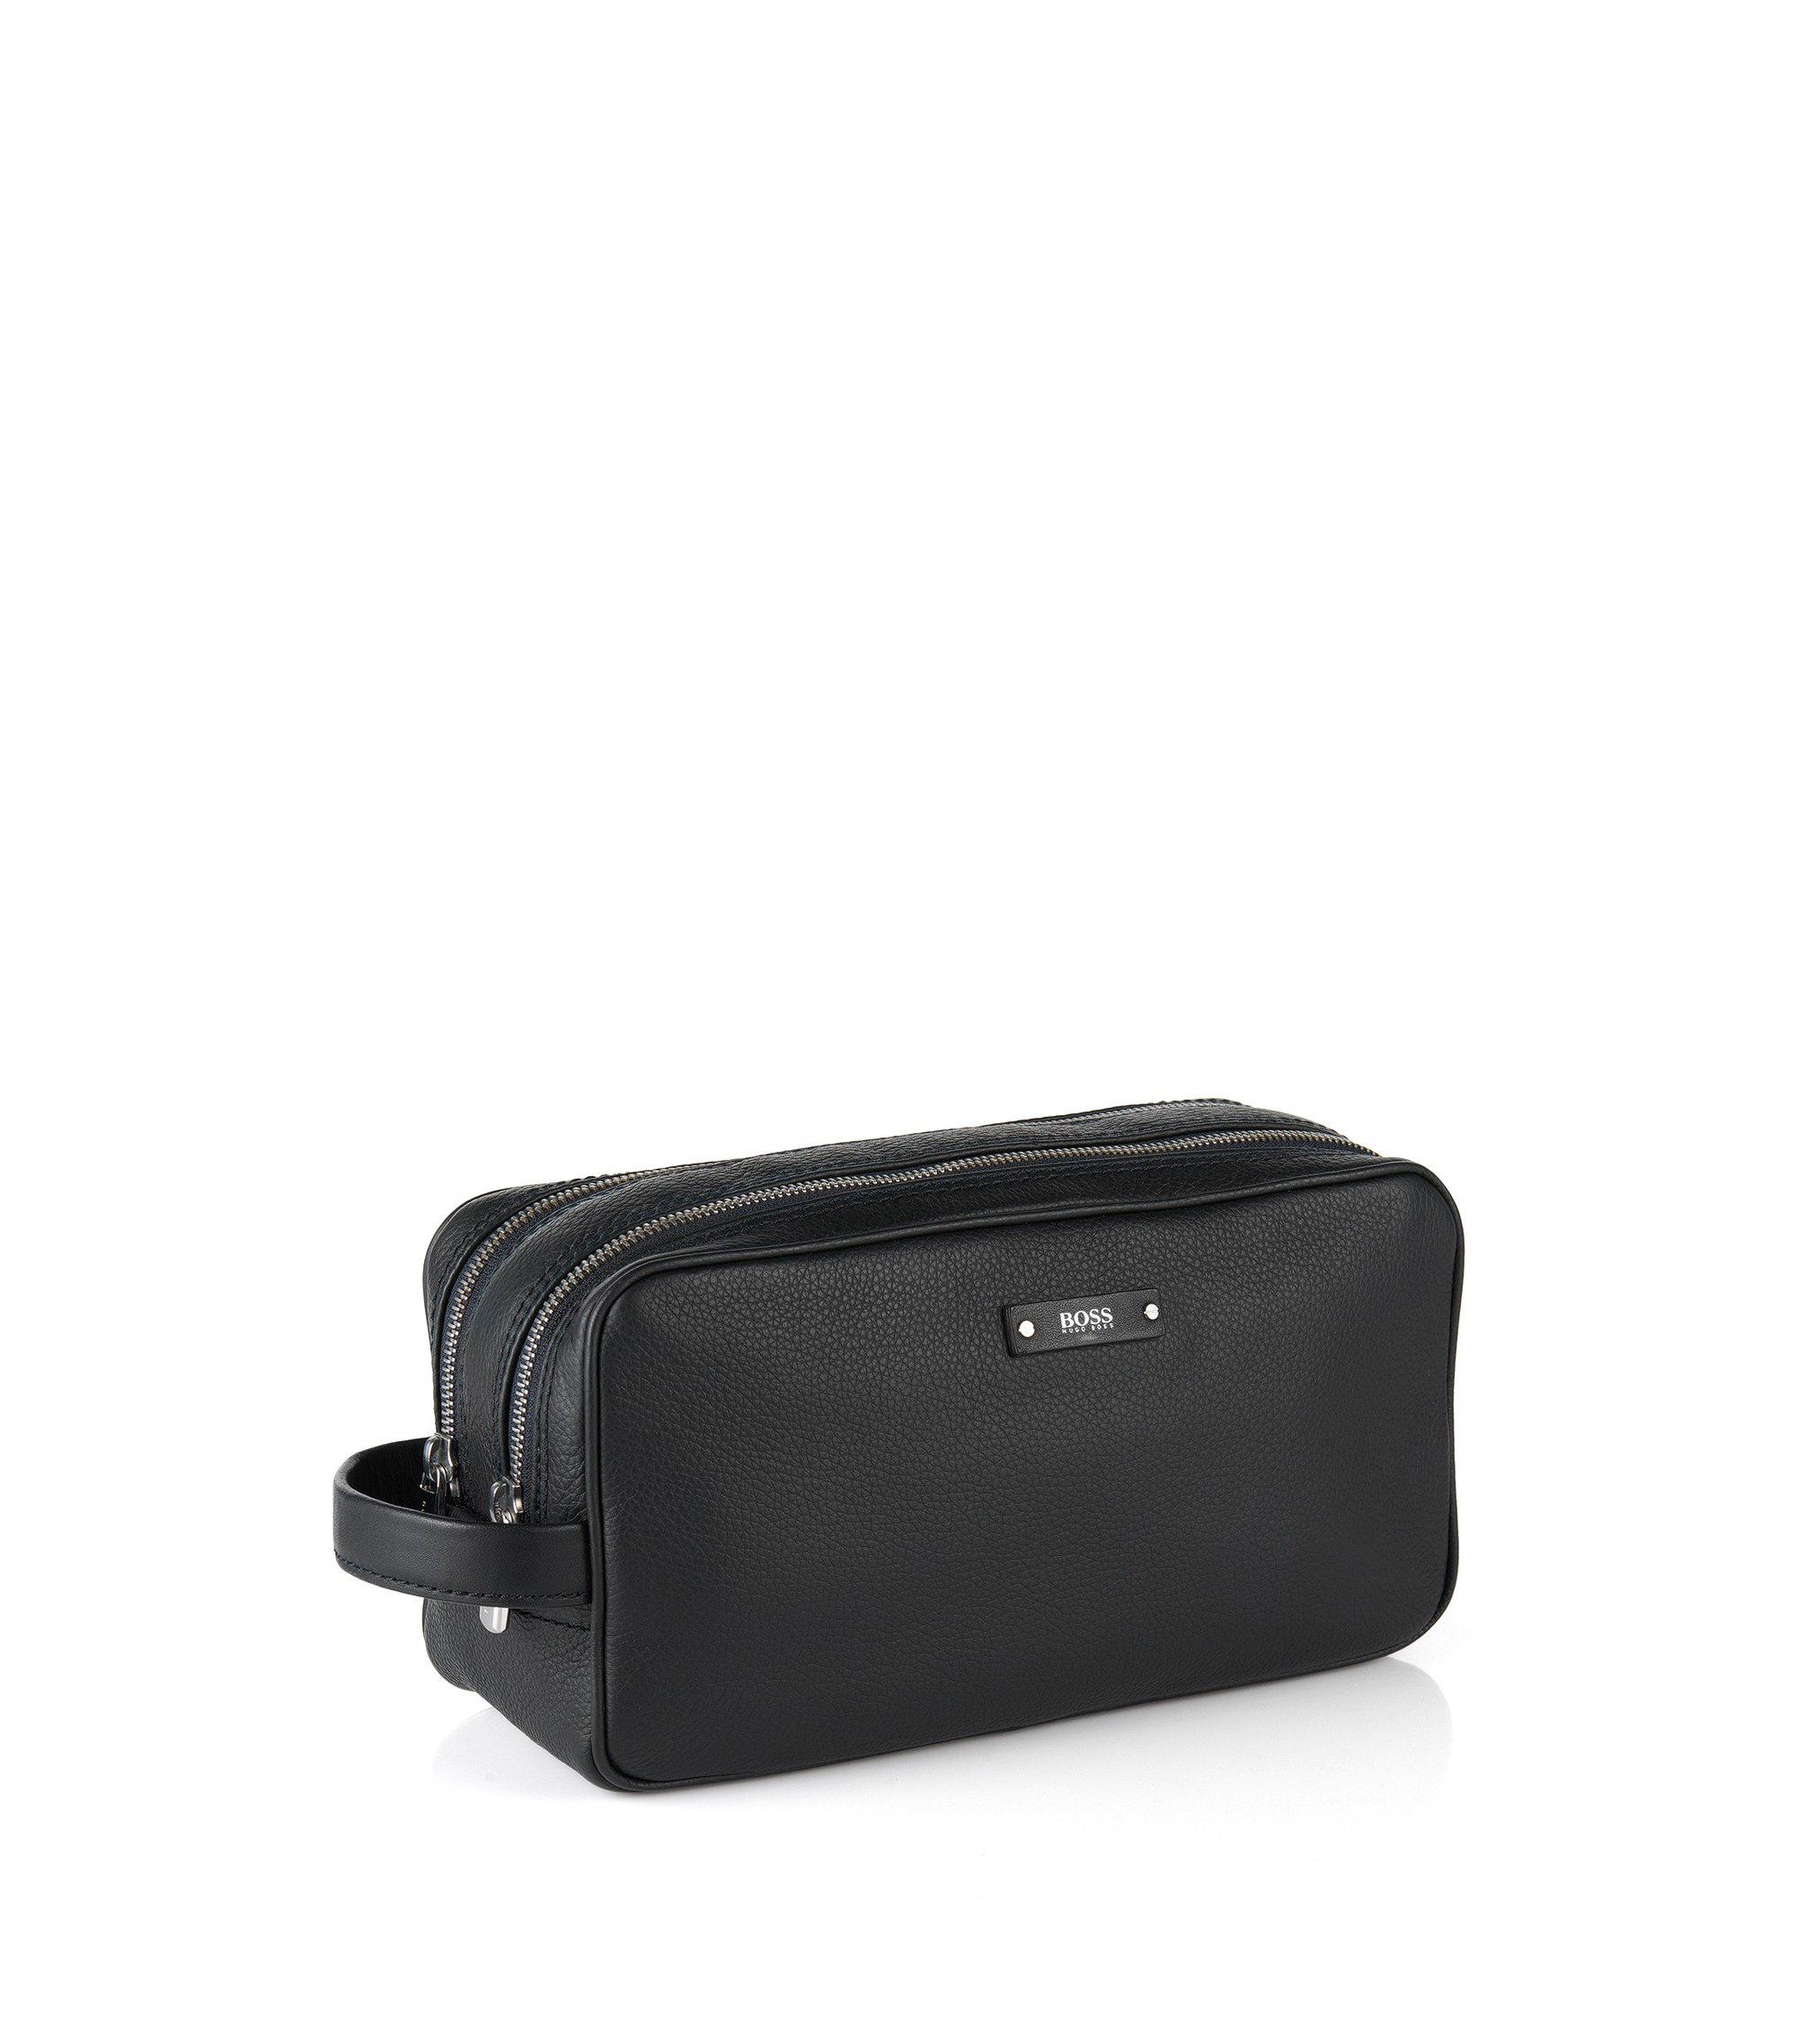 Trousse de toilette en cuir italien de la collection Traveller, Noir